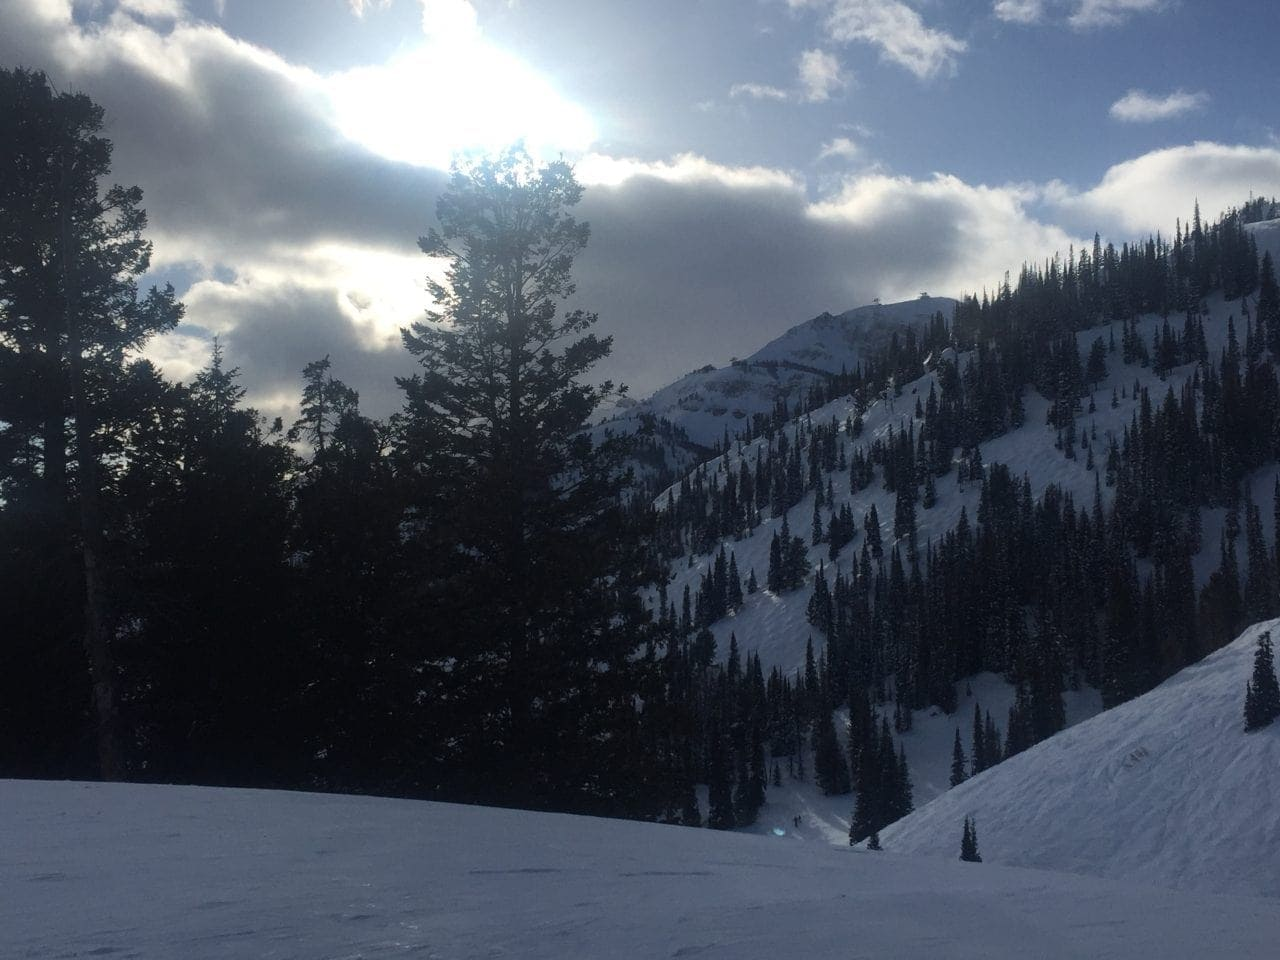 Ski Weekend in Jackson Hole, Wyoming